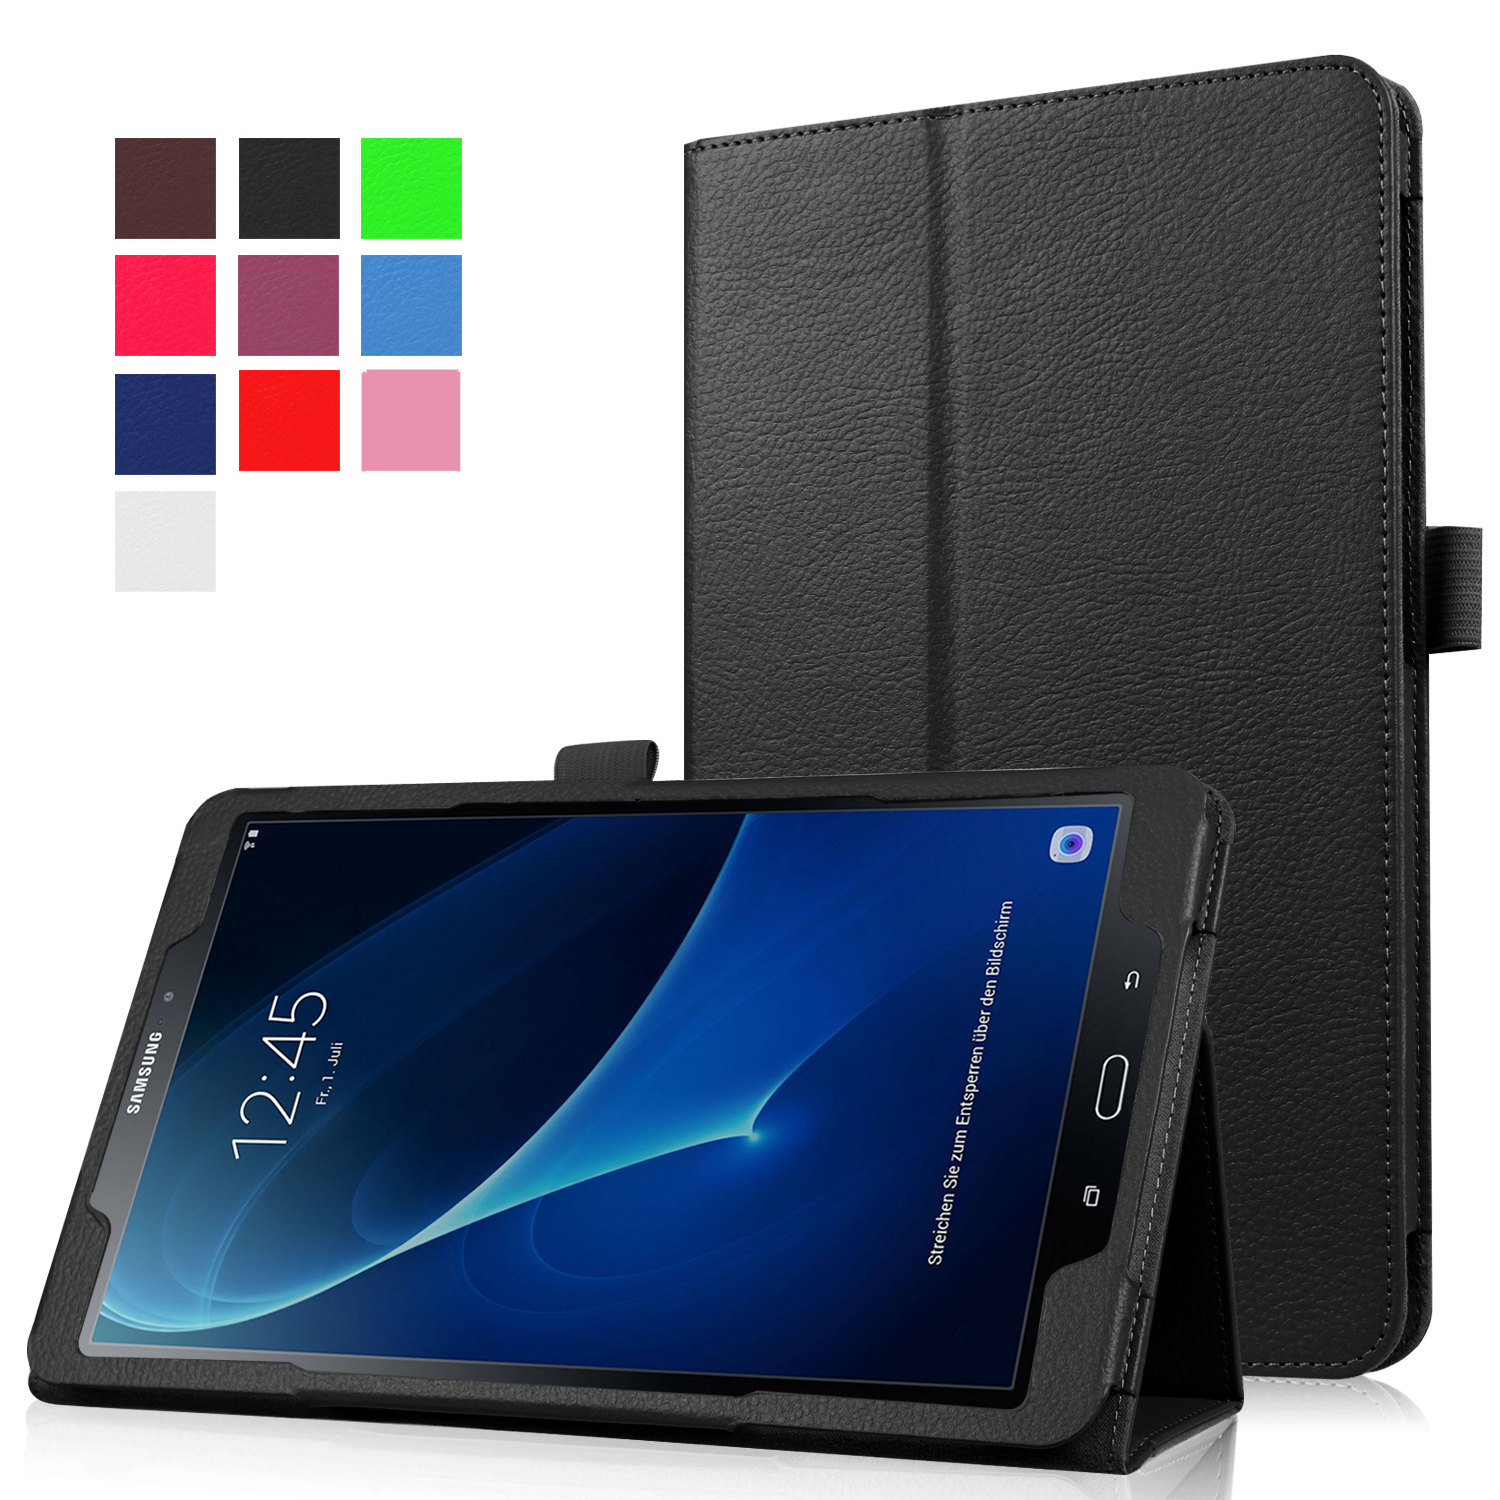 Folio stand cover case For Samsung Galaxy Tab A 10.1 T580 <font><b>T585</b></font> Tablet case Protective shell image